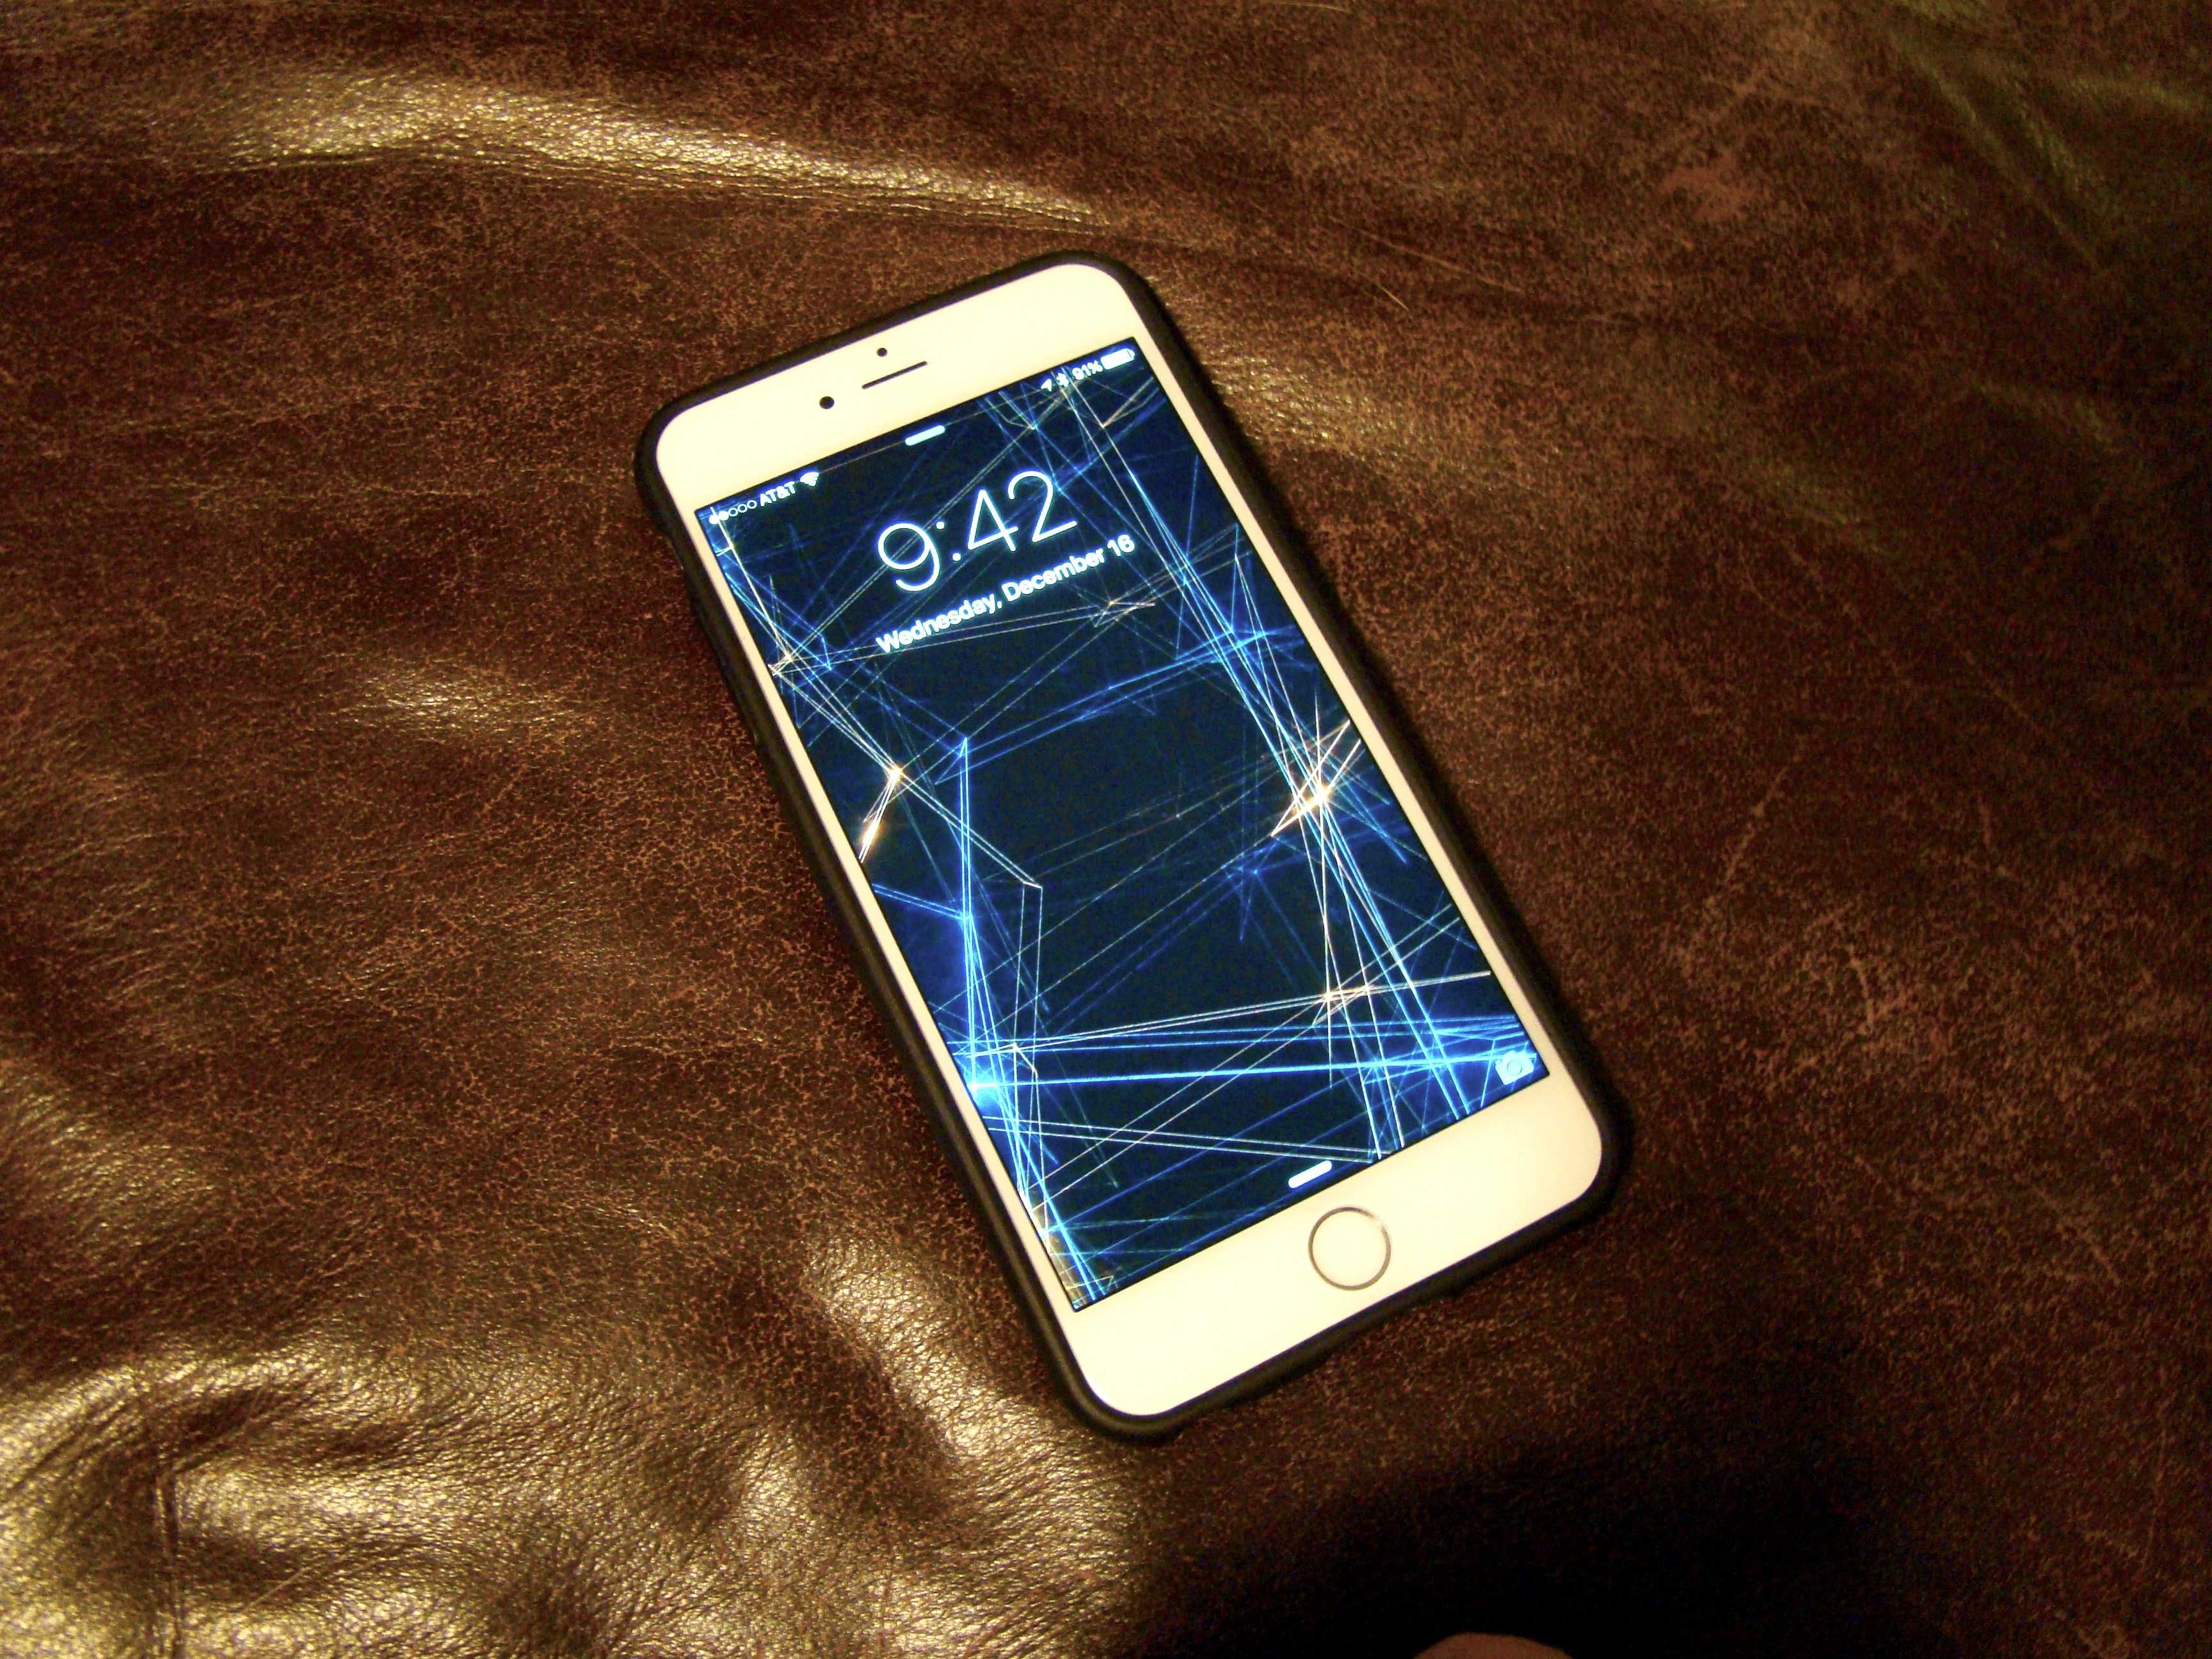 live wallpapers,mobile phone,gadget,smartphone,portable communications device,communication device